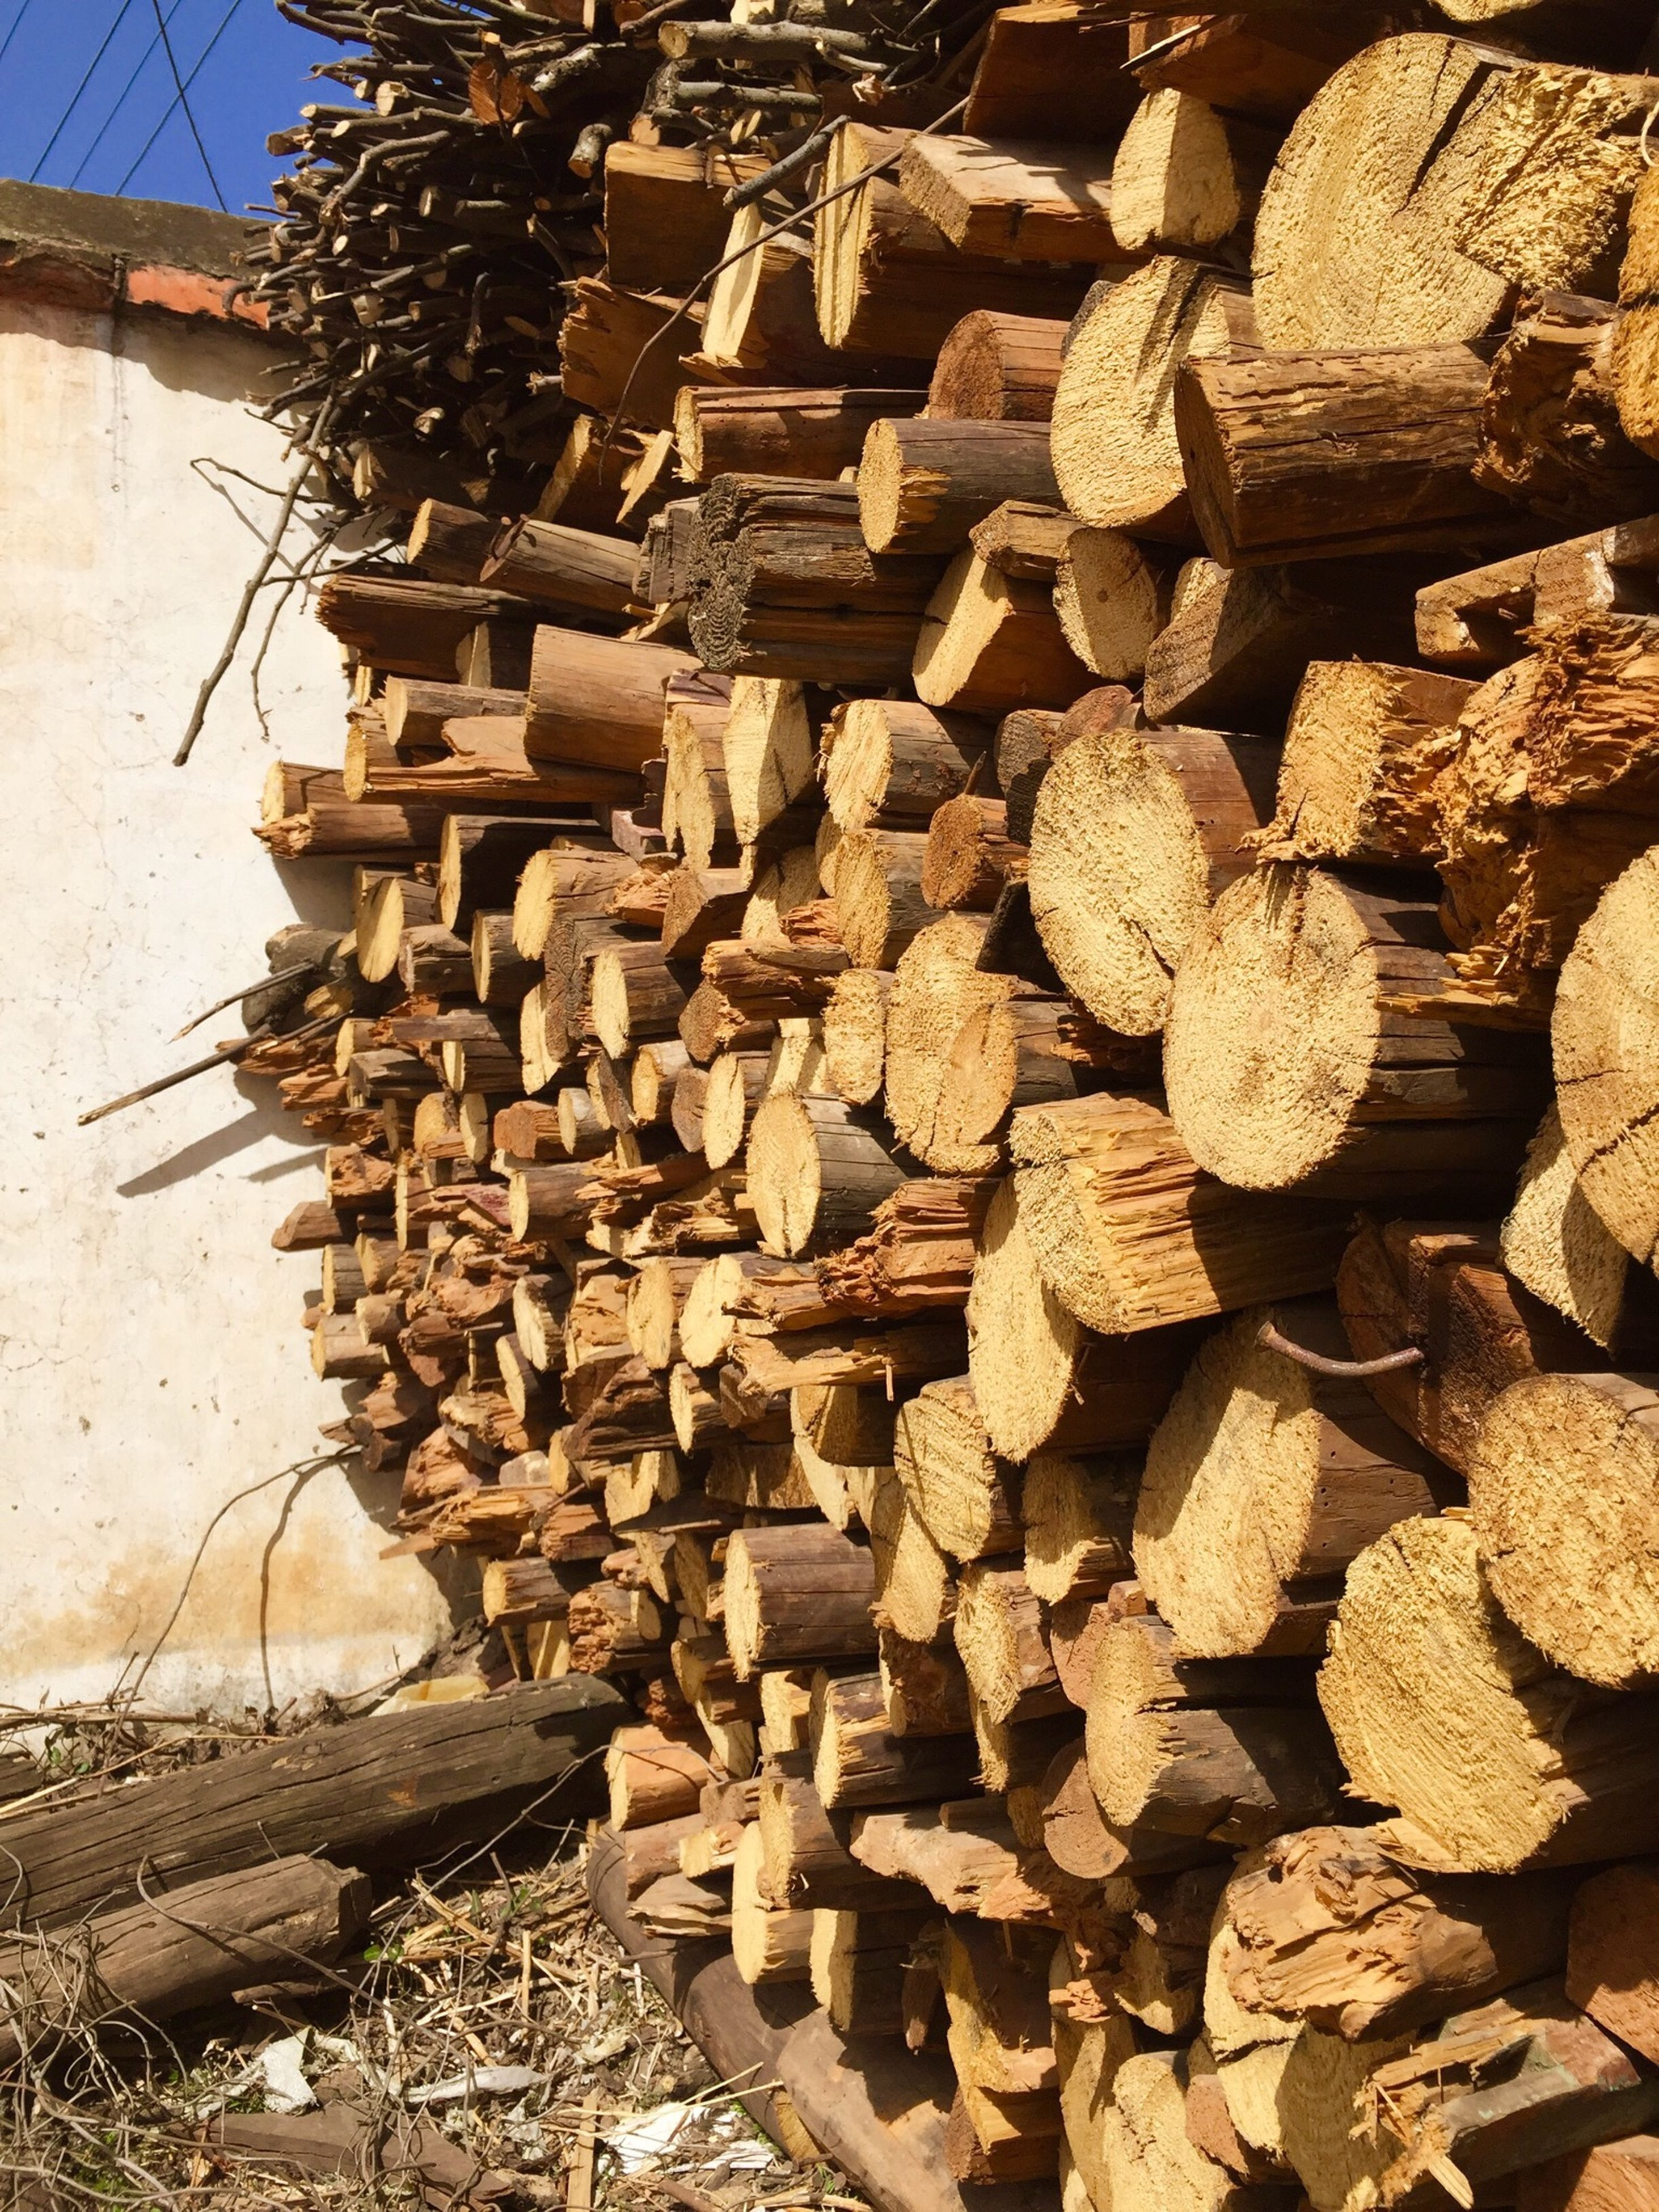 large group of objects, stack, abundance, firewood, deforestation, lumber industry, log, timber, wood - material, heap, stone - object, environmental issues, woodpile, fuel and power generation, day, outdoors, pile, fossil fuel, arrangement, sunlight